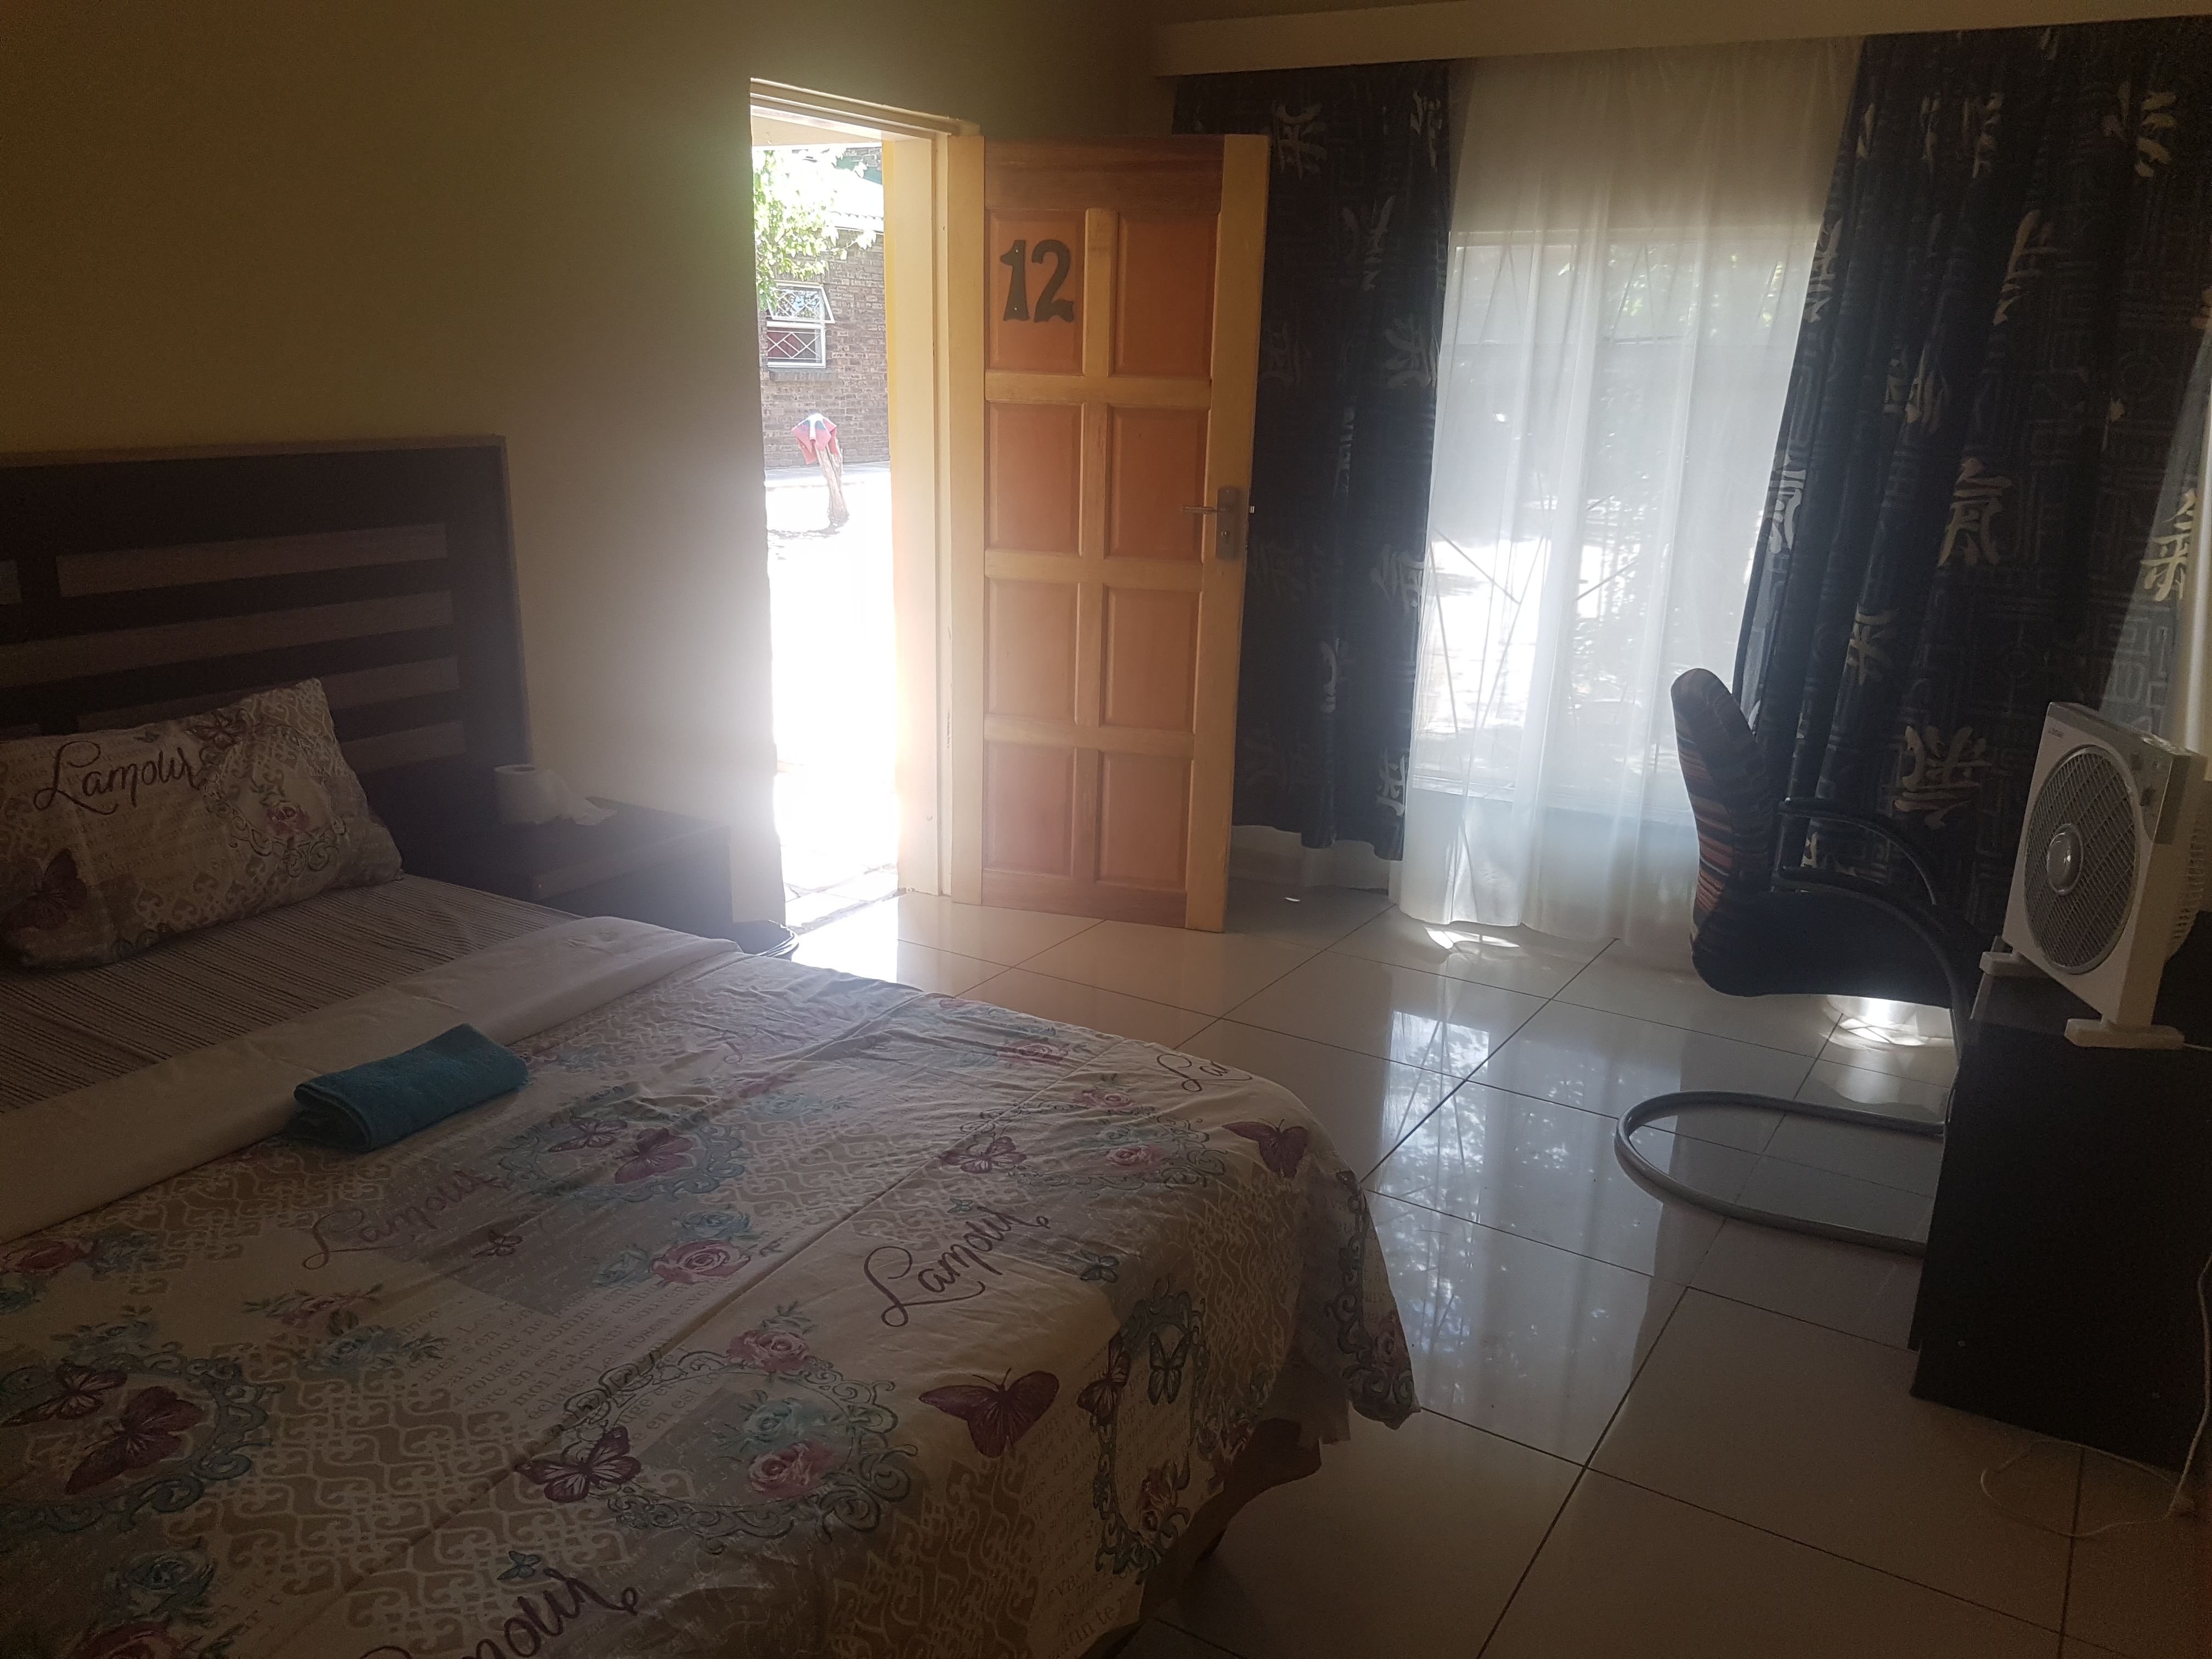 Guest House in Vereeniging (only R200 a night)